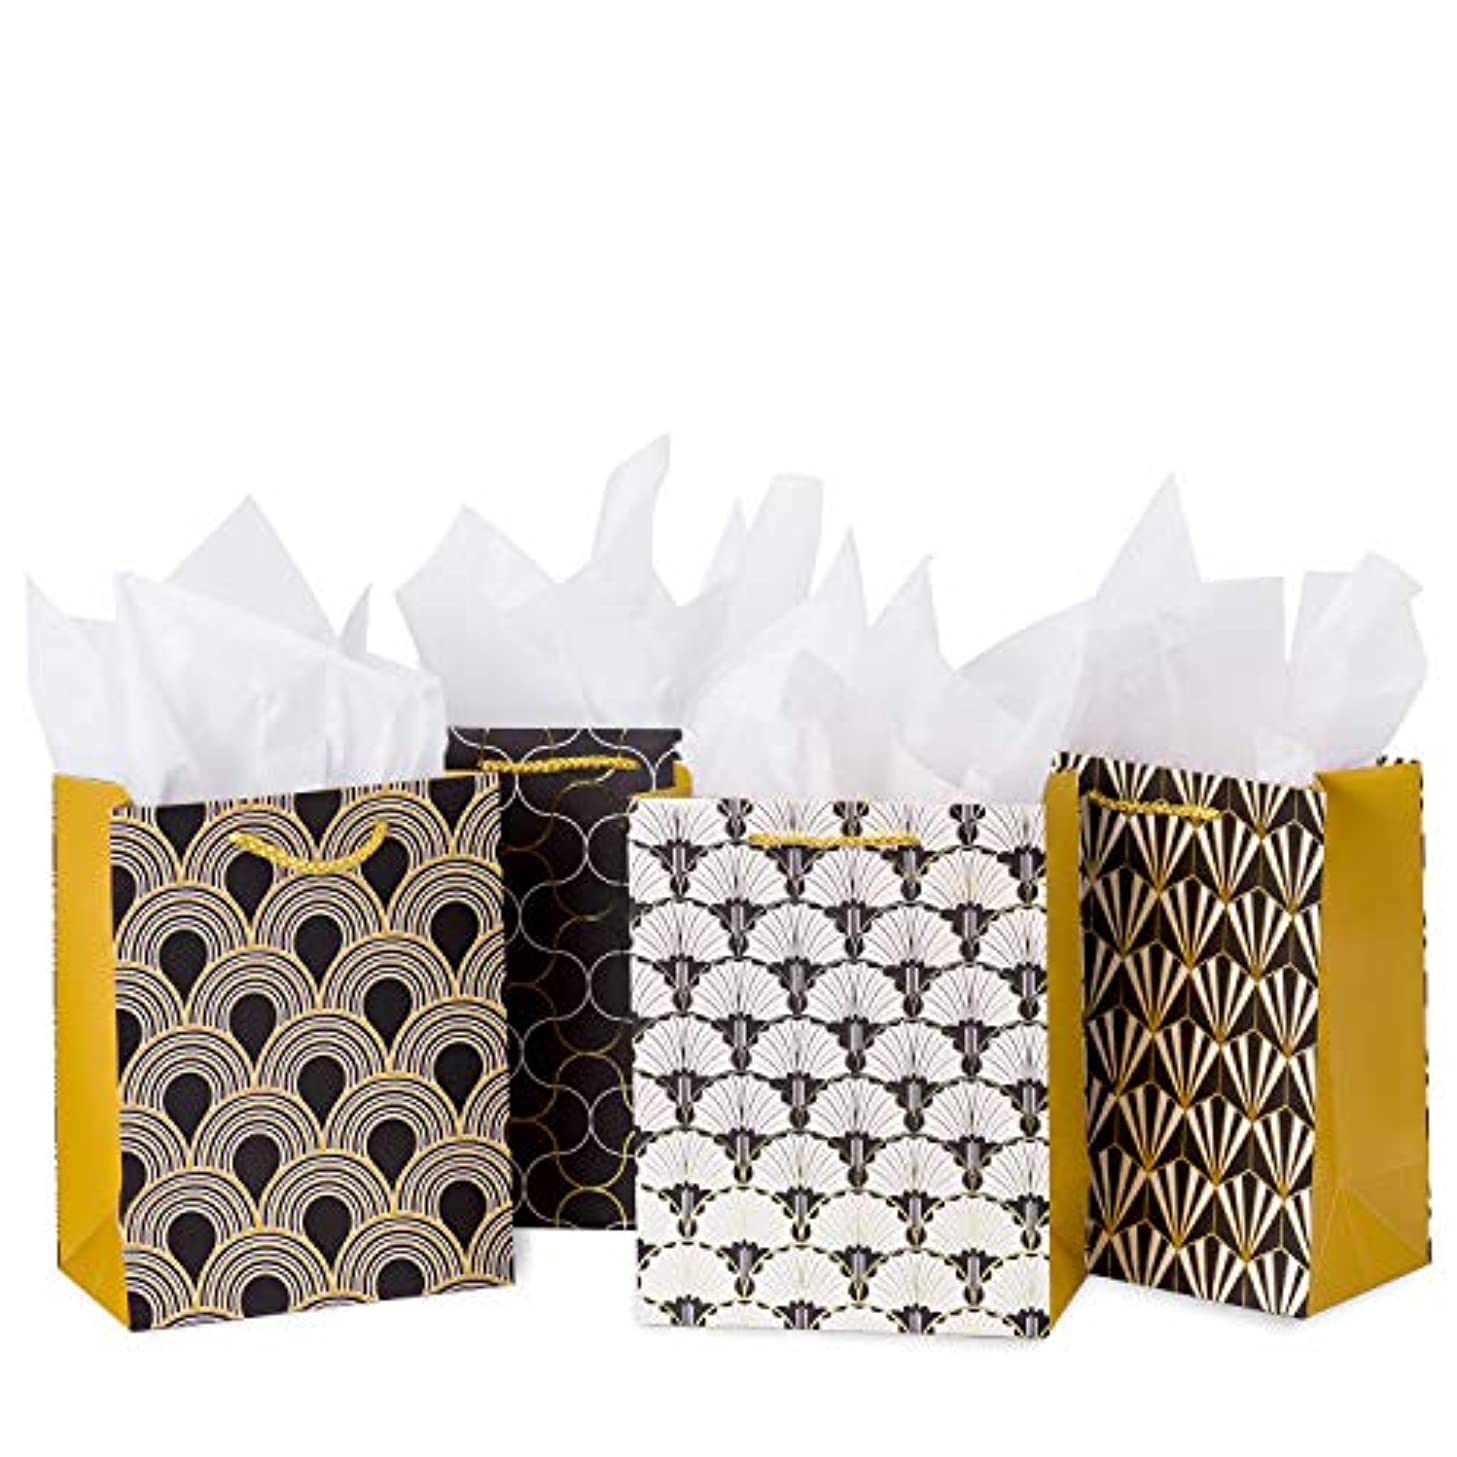 Loveinside Small Black Gift Bags - 4pcs Black and Gold Design Shopping Bags with Tissue Paper for Holiday Gift Wrap - 7